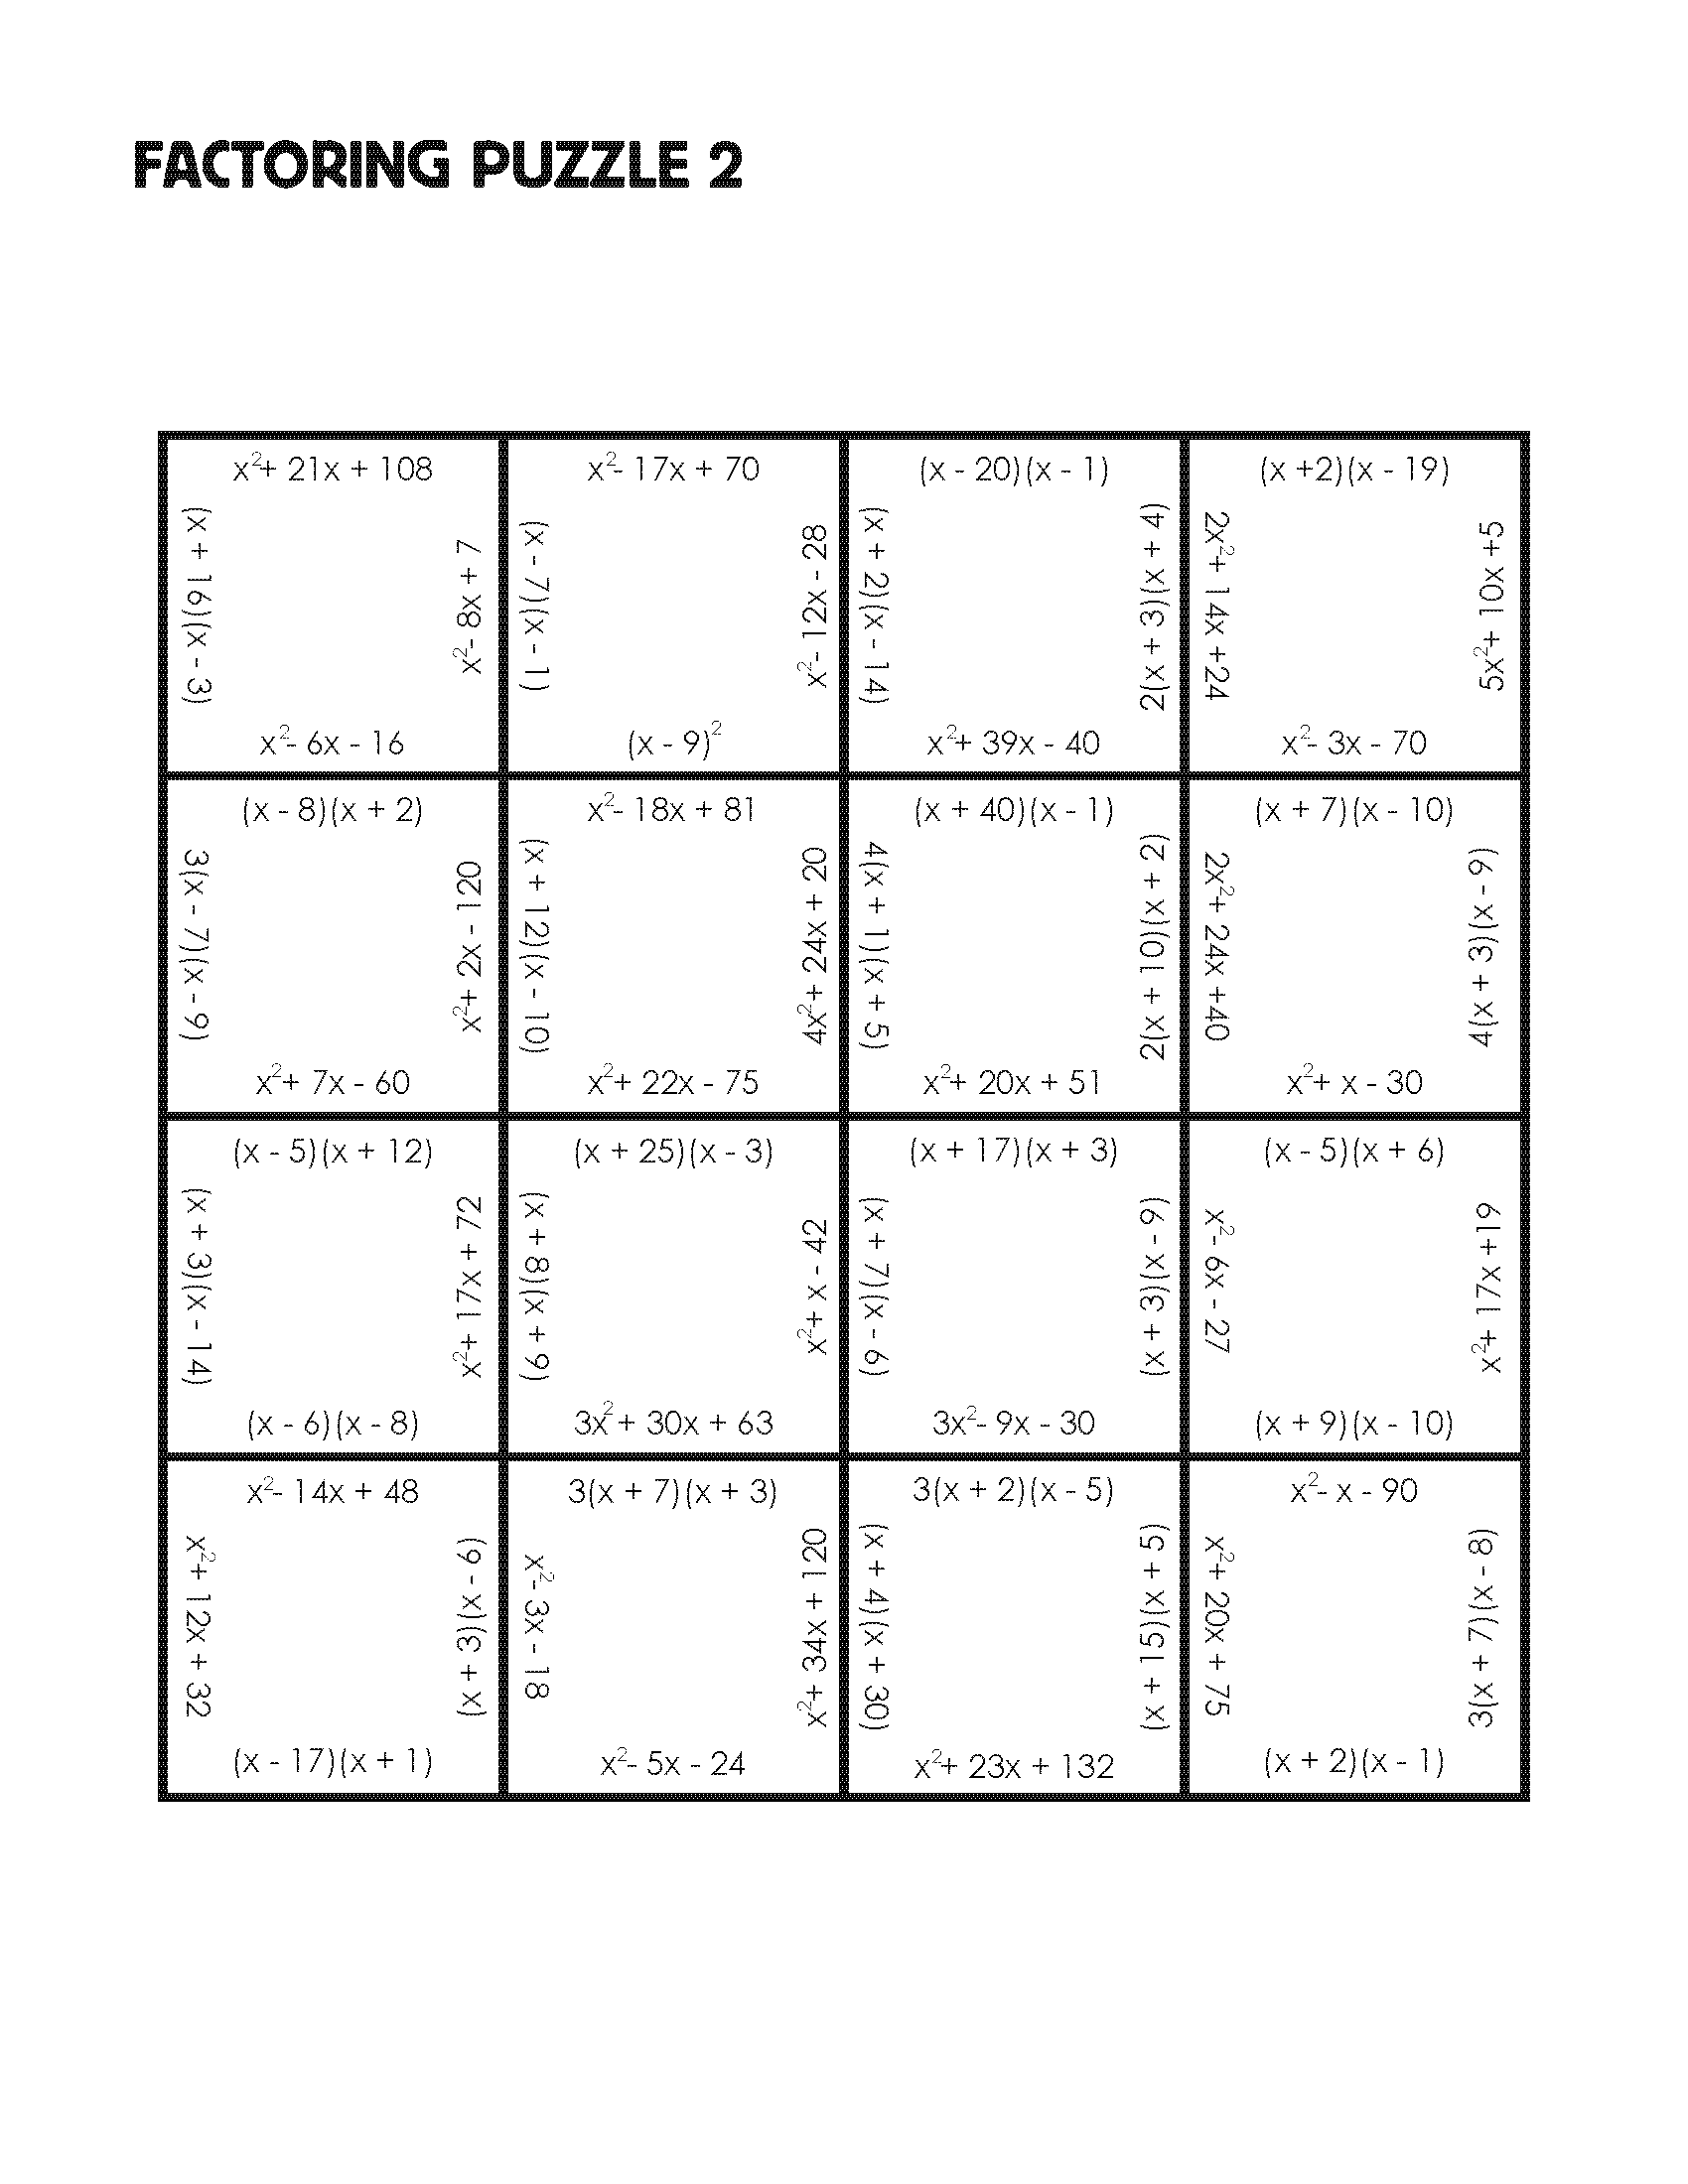 worksheet Factoring By Gcf Worksheet factoring puzzle practice version mrmillermath factorpuzzlechallenge